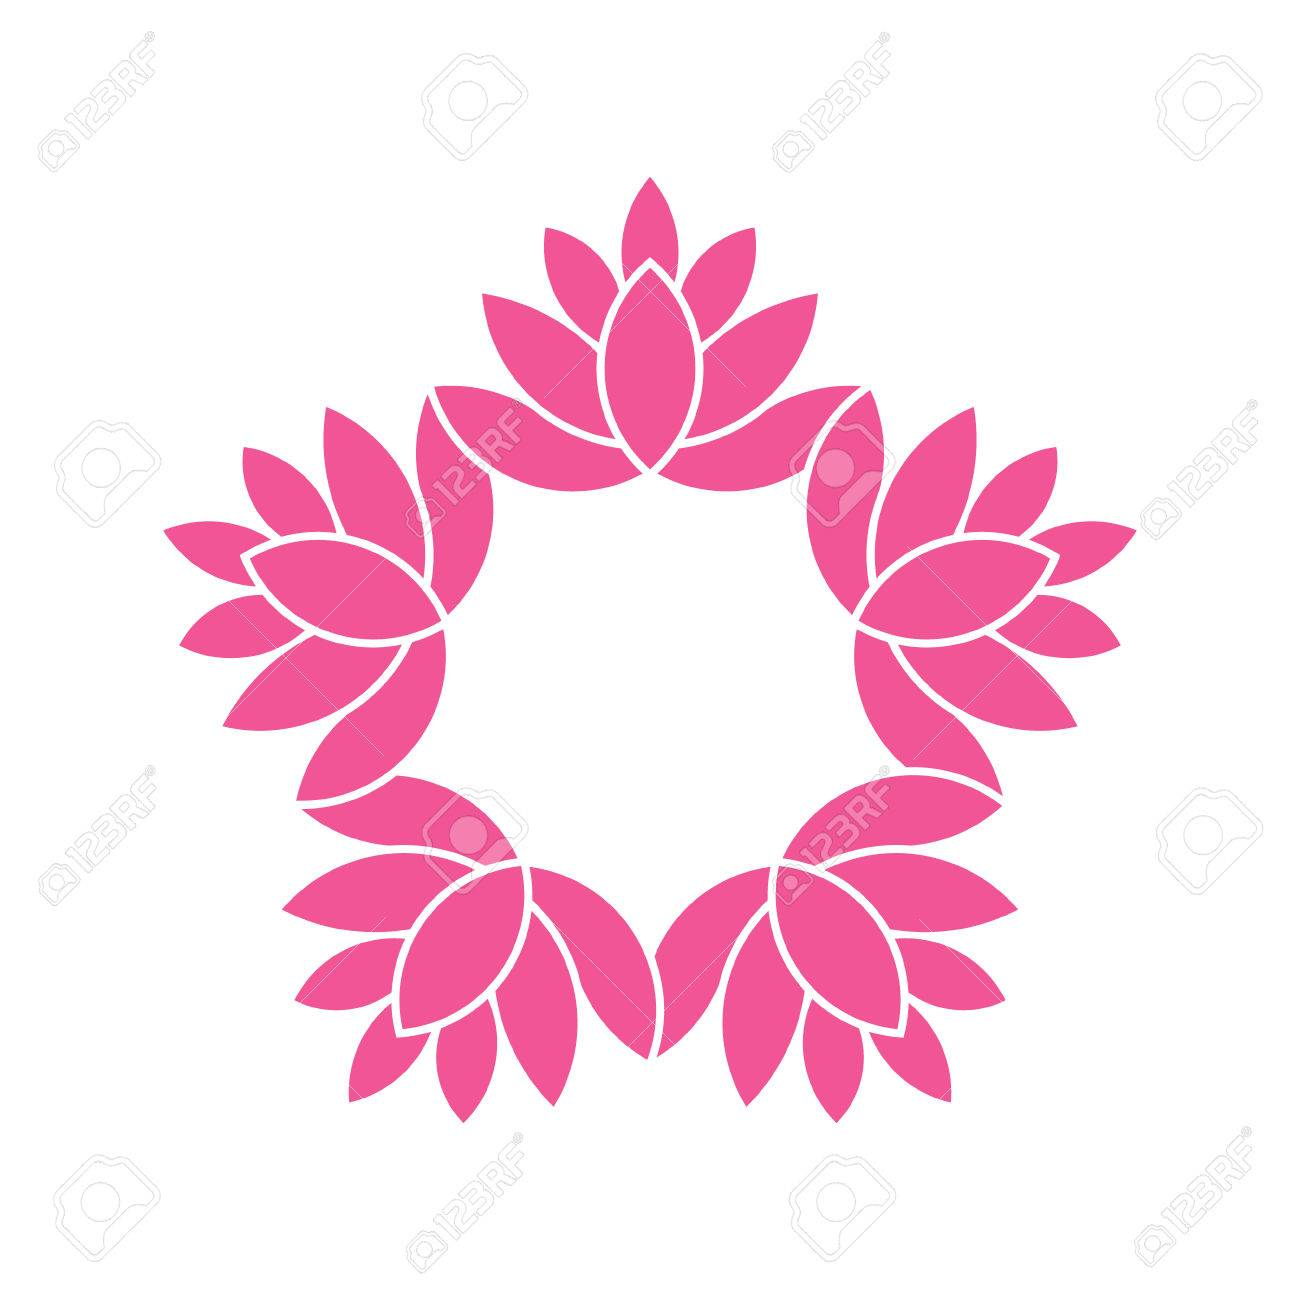 Lotus Flowers Circlewatercolor Style Vector Graphic Design Royalty